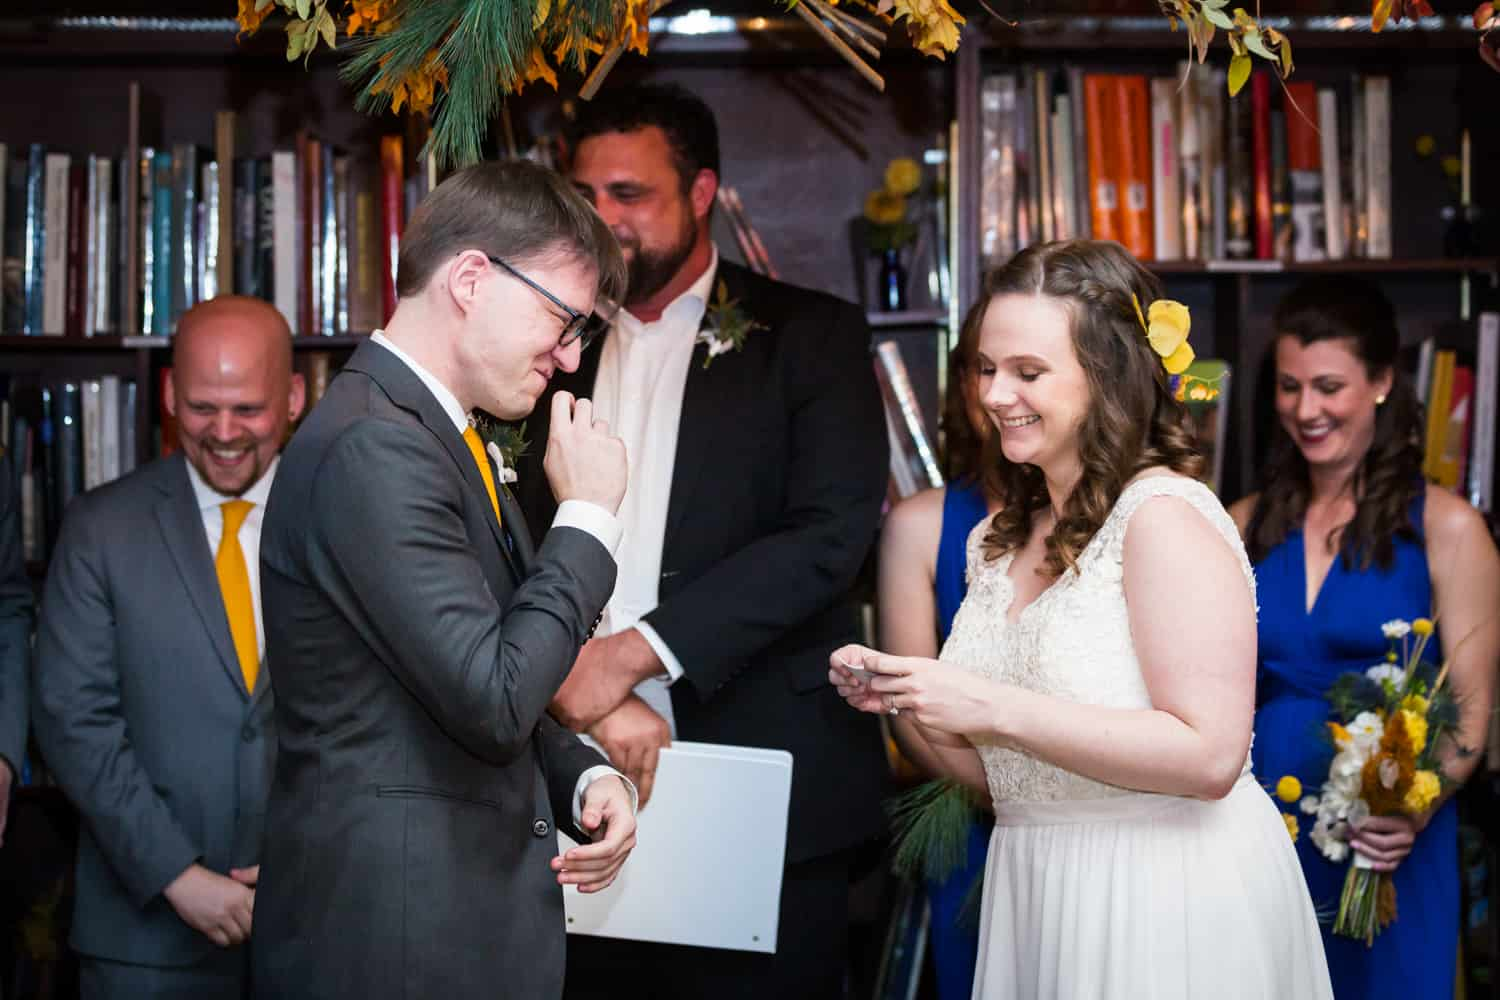 Bride and groom laughing during ceremony for an article on Covid-19 wedding planning